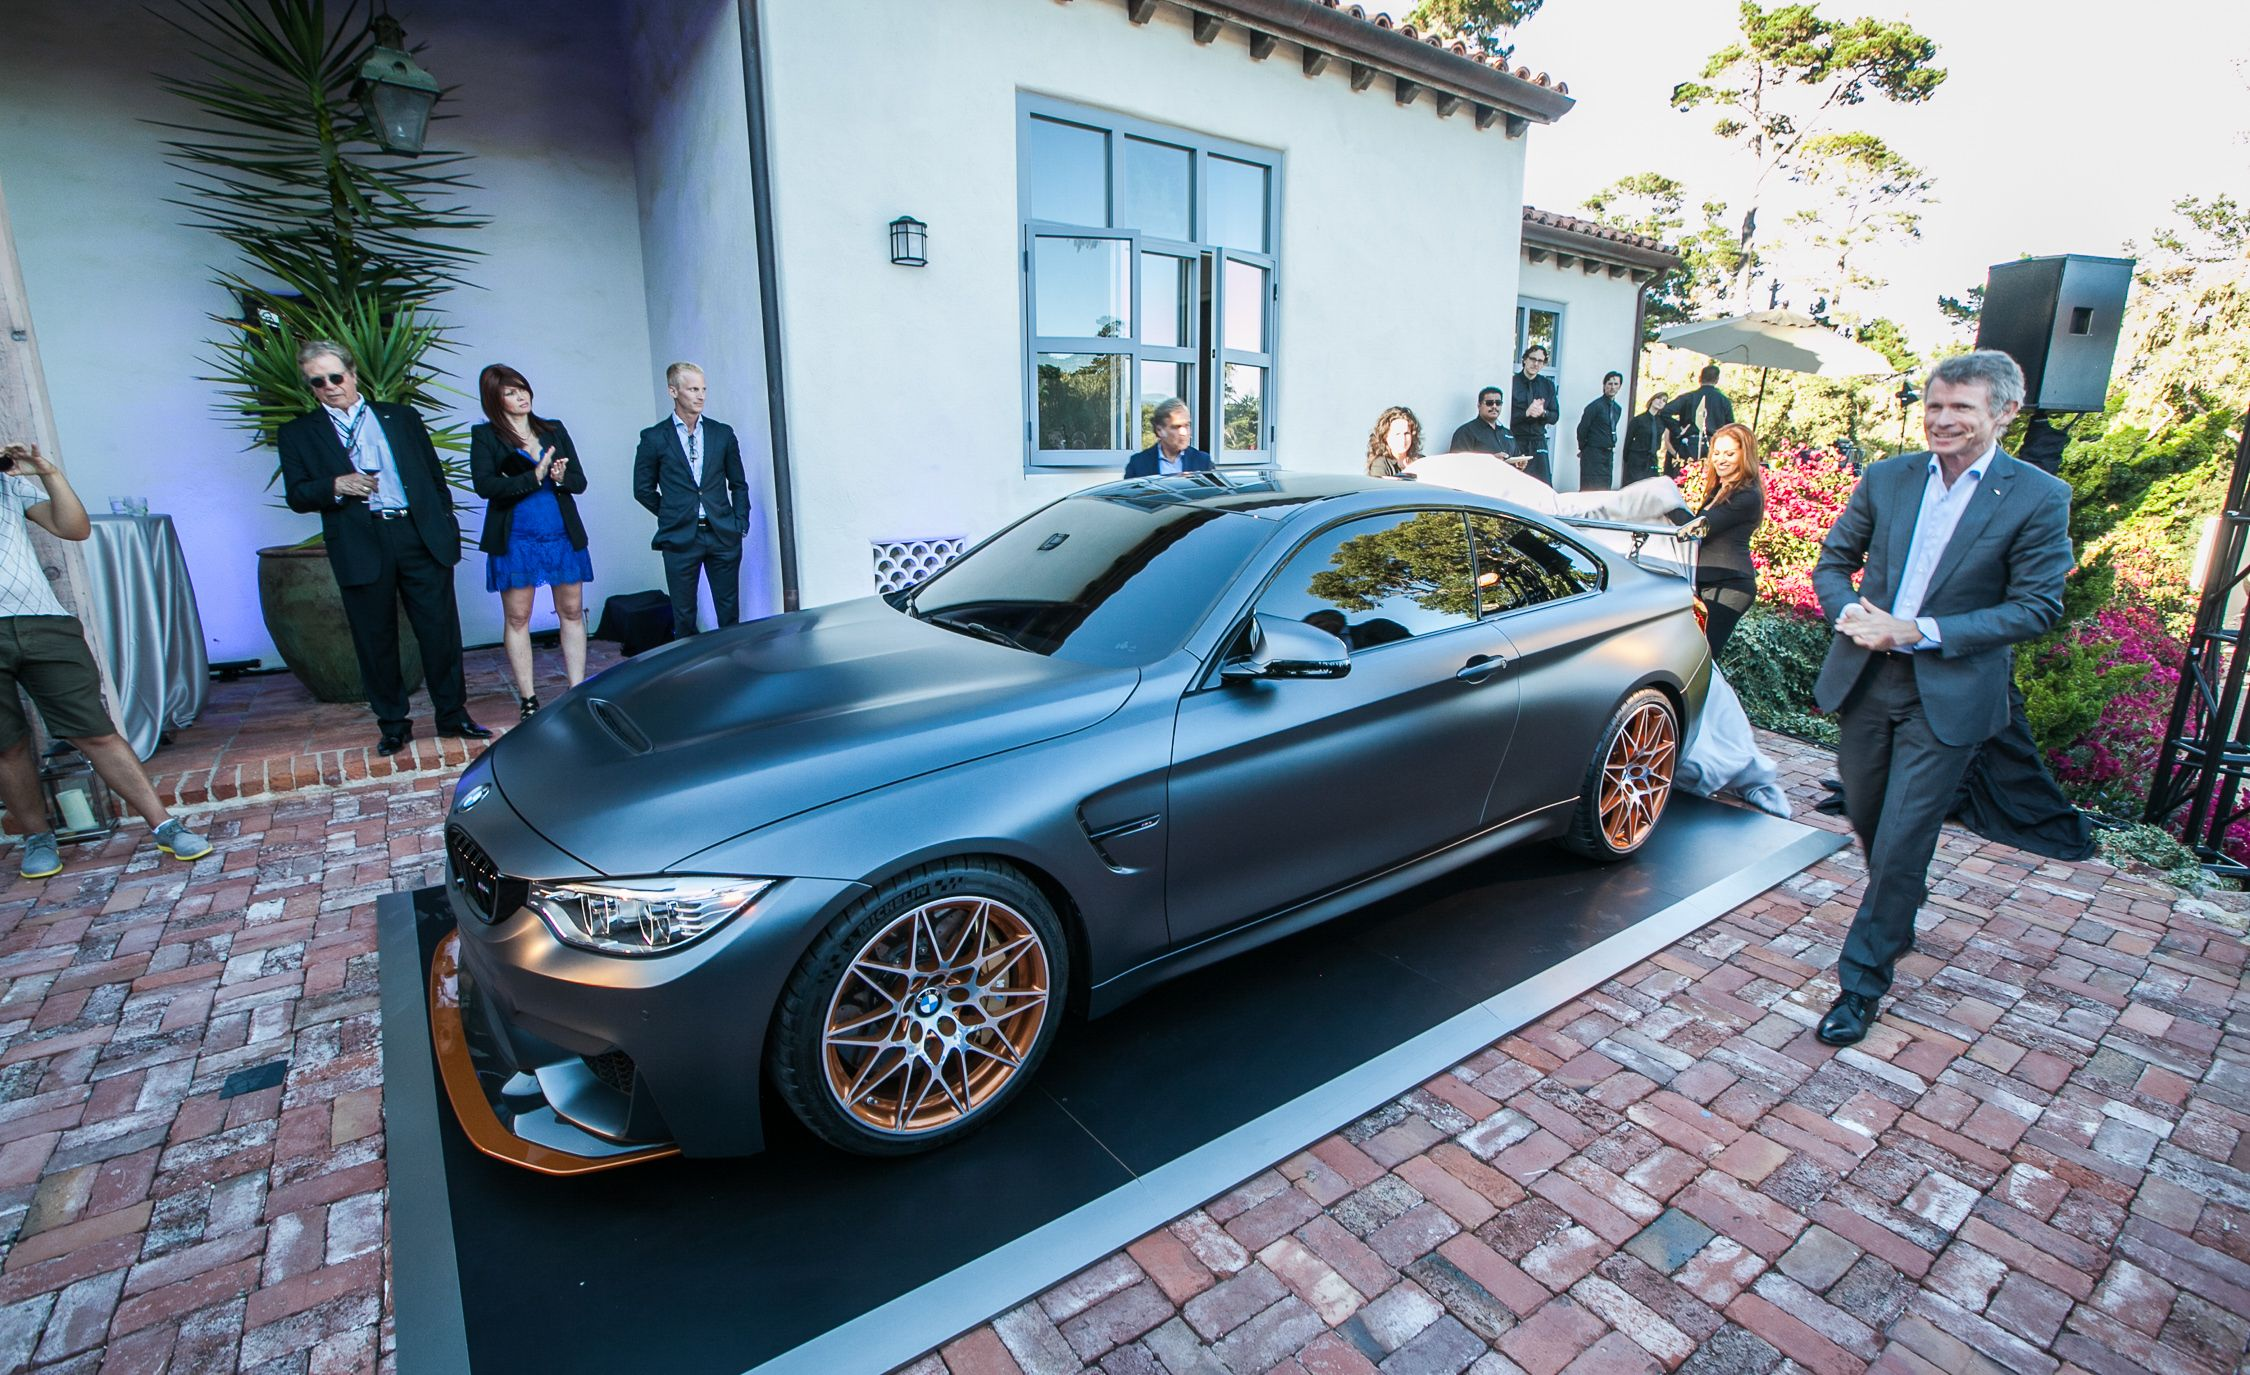 BMW M4 GTS Concept: A Preview Of The Hard Core Car To Come